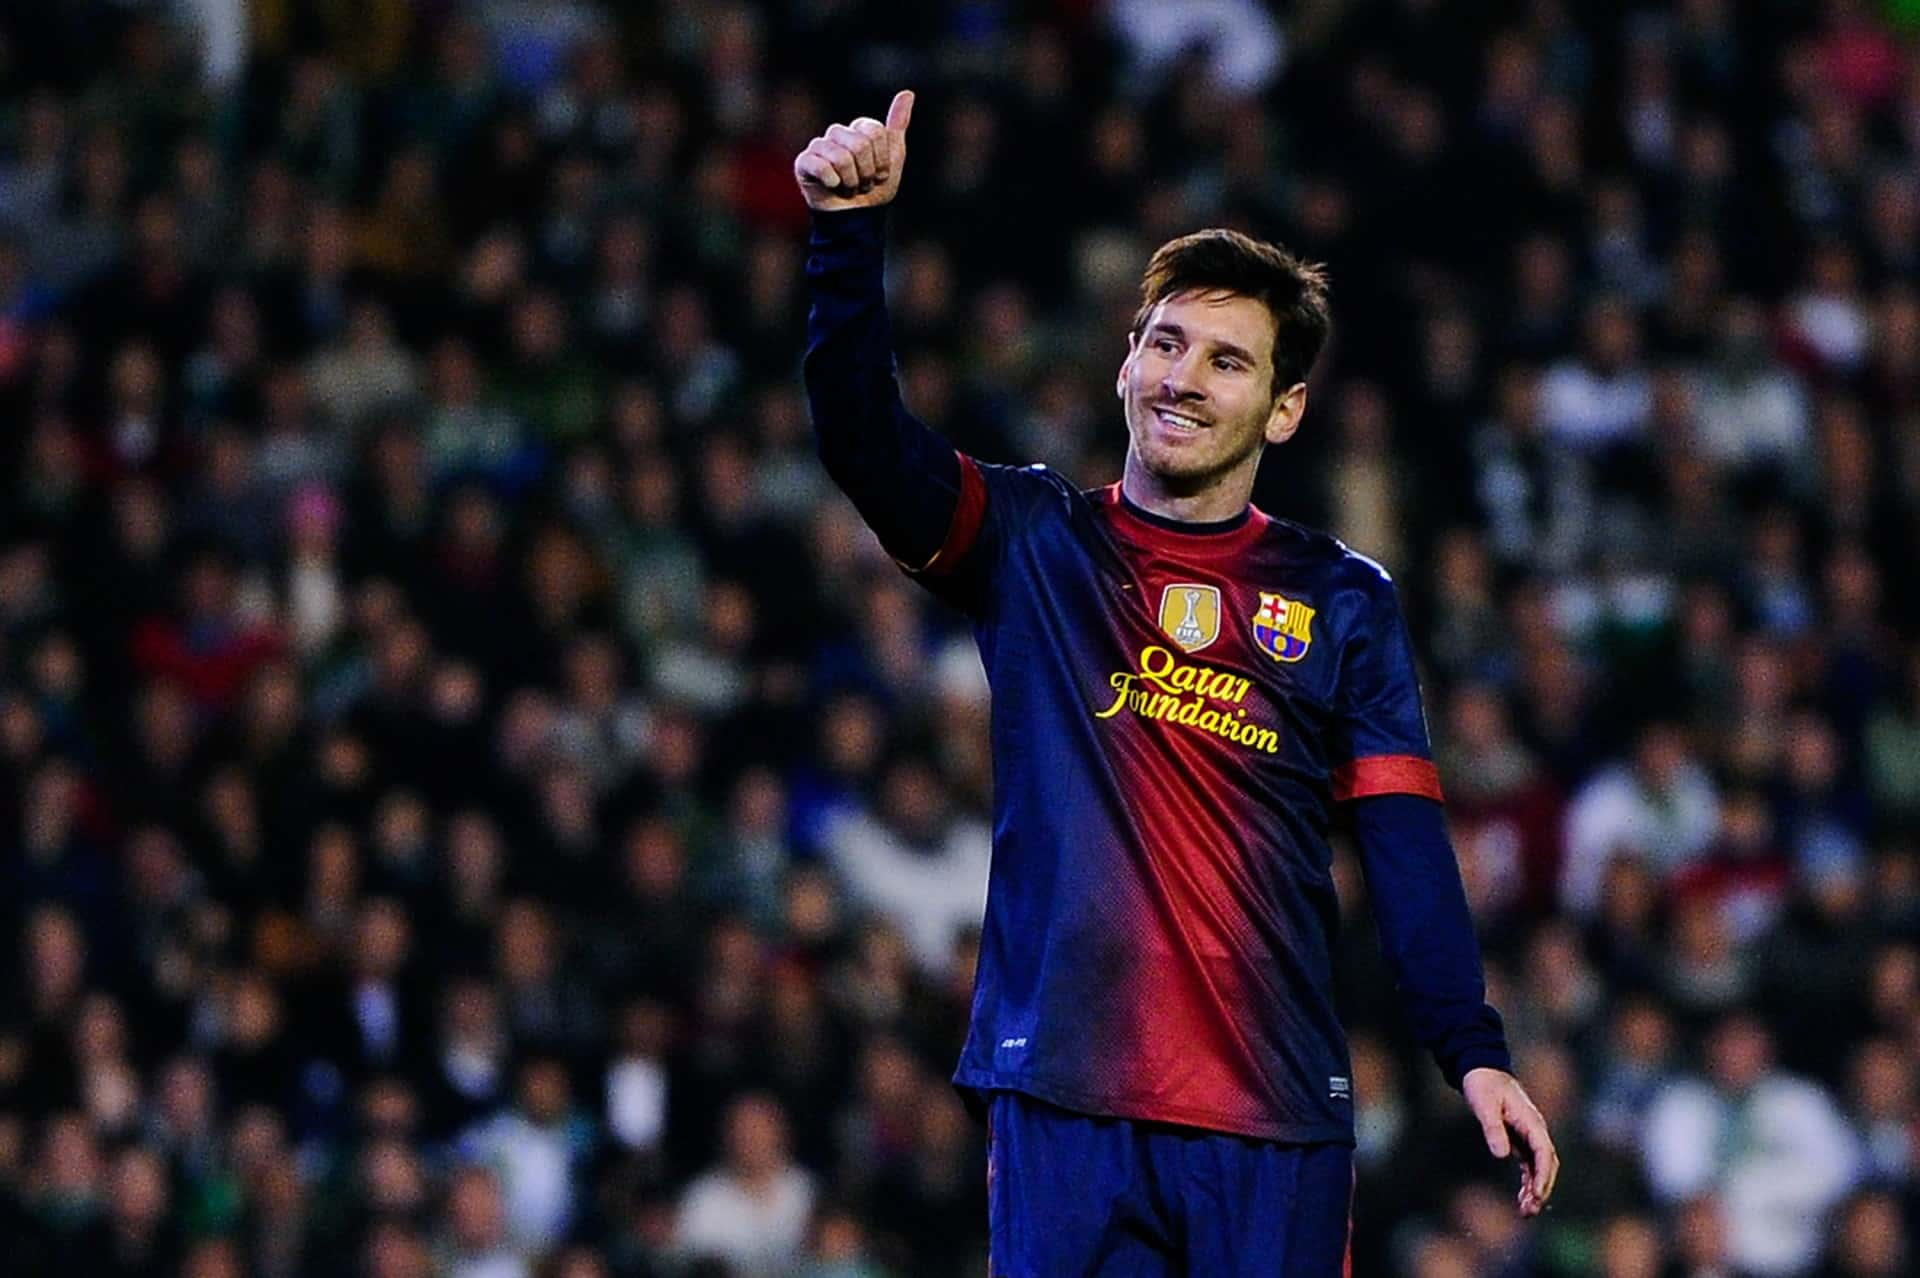 soccer archives sports beem lionel messi net worth and salary how rich he is his estimated salary at fc barcelona as of 2015 is 44 68 million 40 million